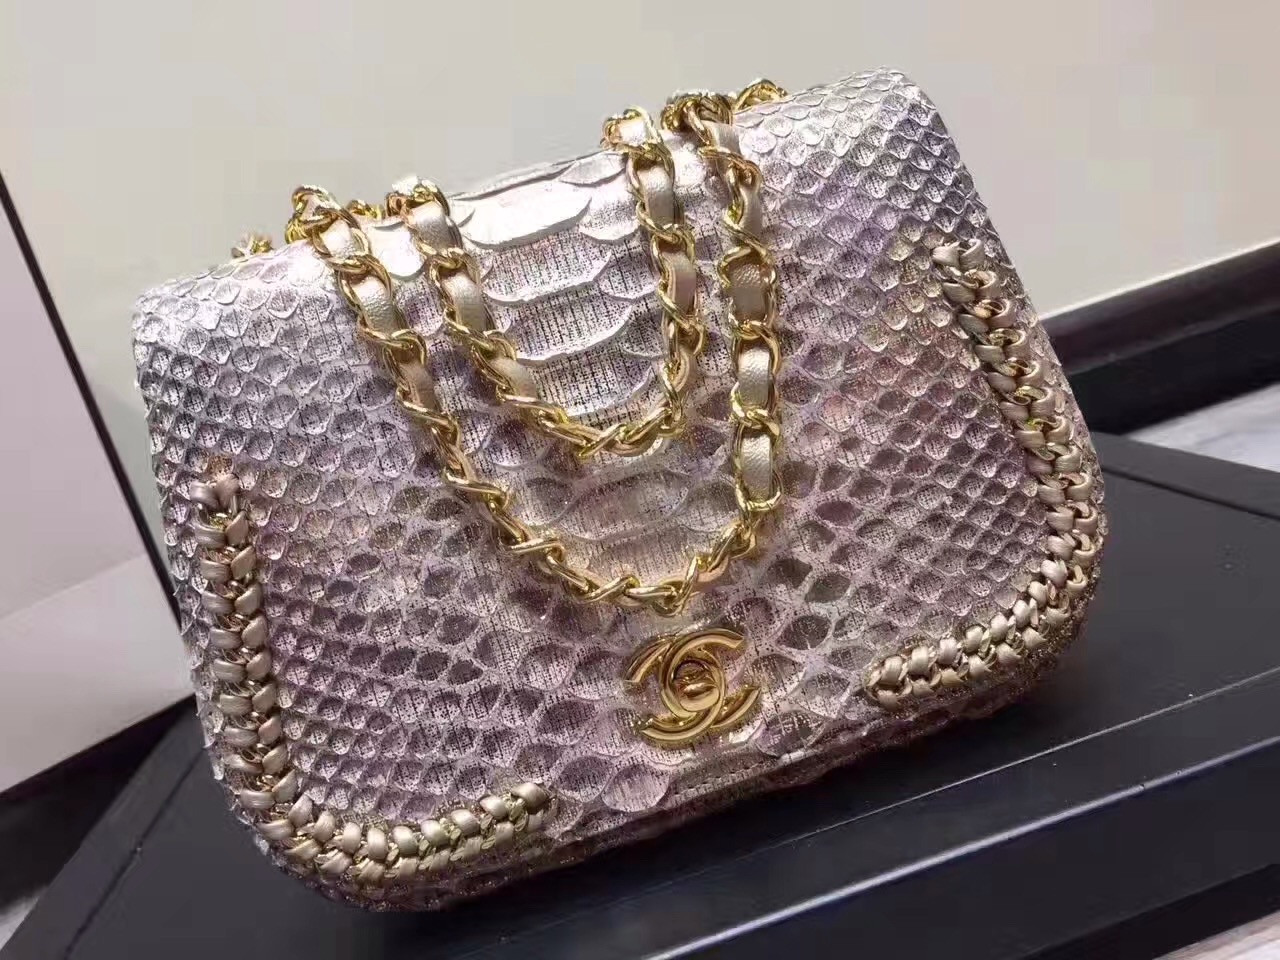 d17a10265c34 Chanel Flap Bag With Top Handle Python   Gold Metal Brown   White ...